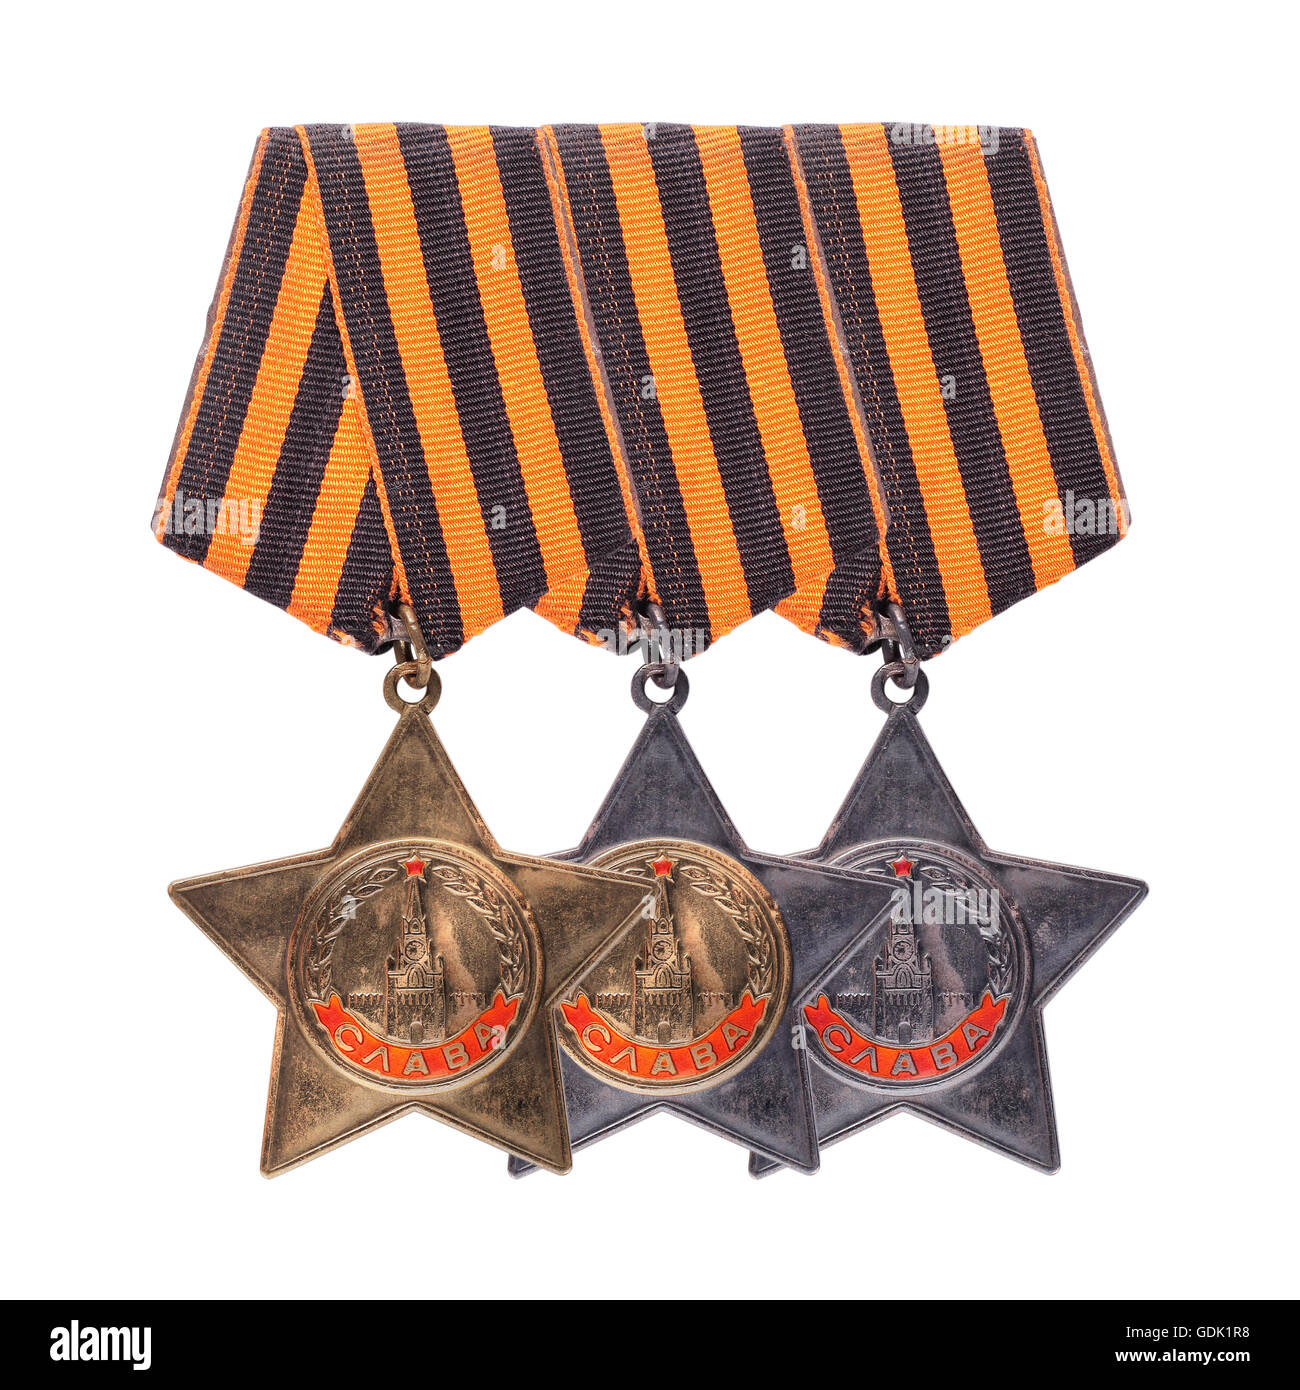 Order of Glory 3 degrees. Battle Awards WWII 59